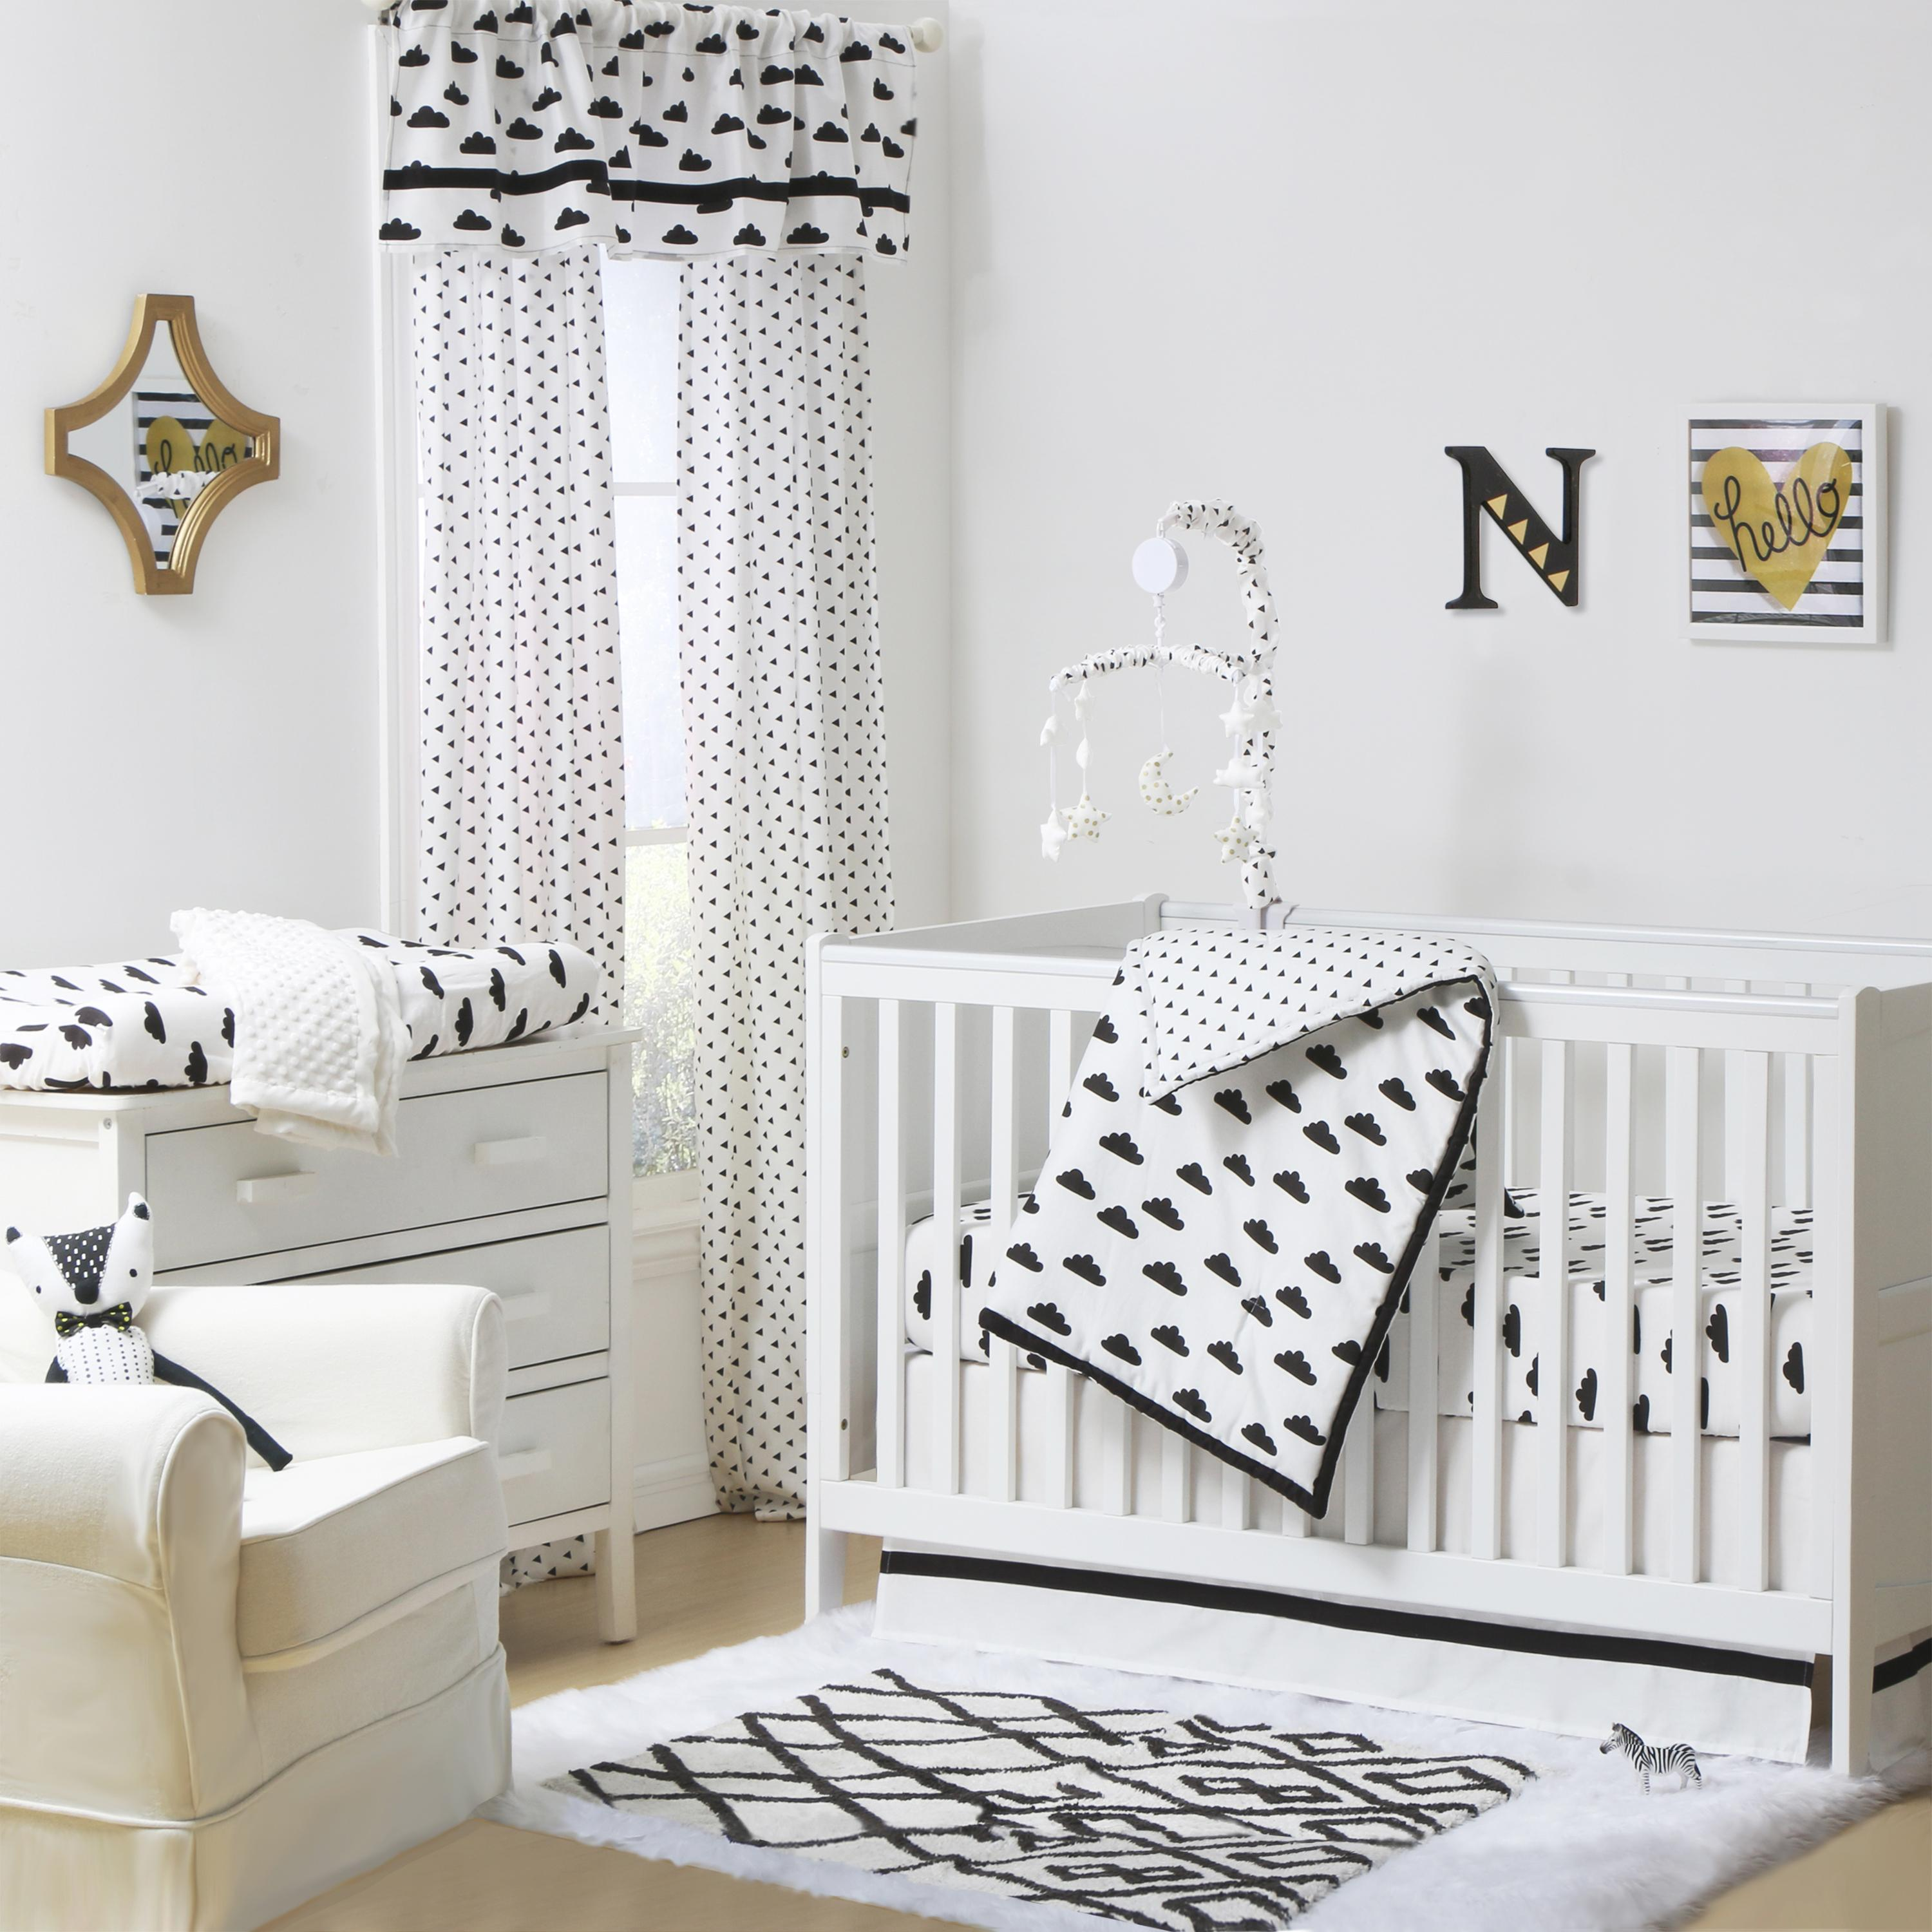 crib bedding piece sets cribs set reviews sadie rae wayfair pdx viv baby kids bed